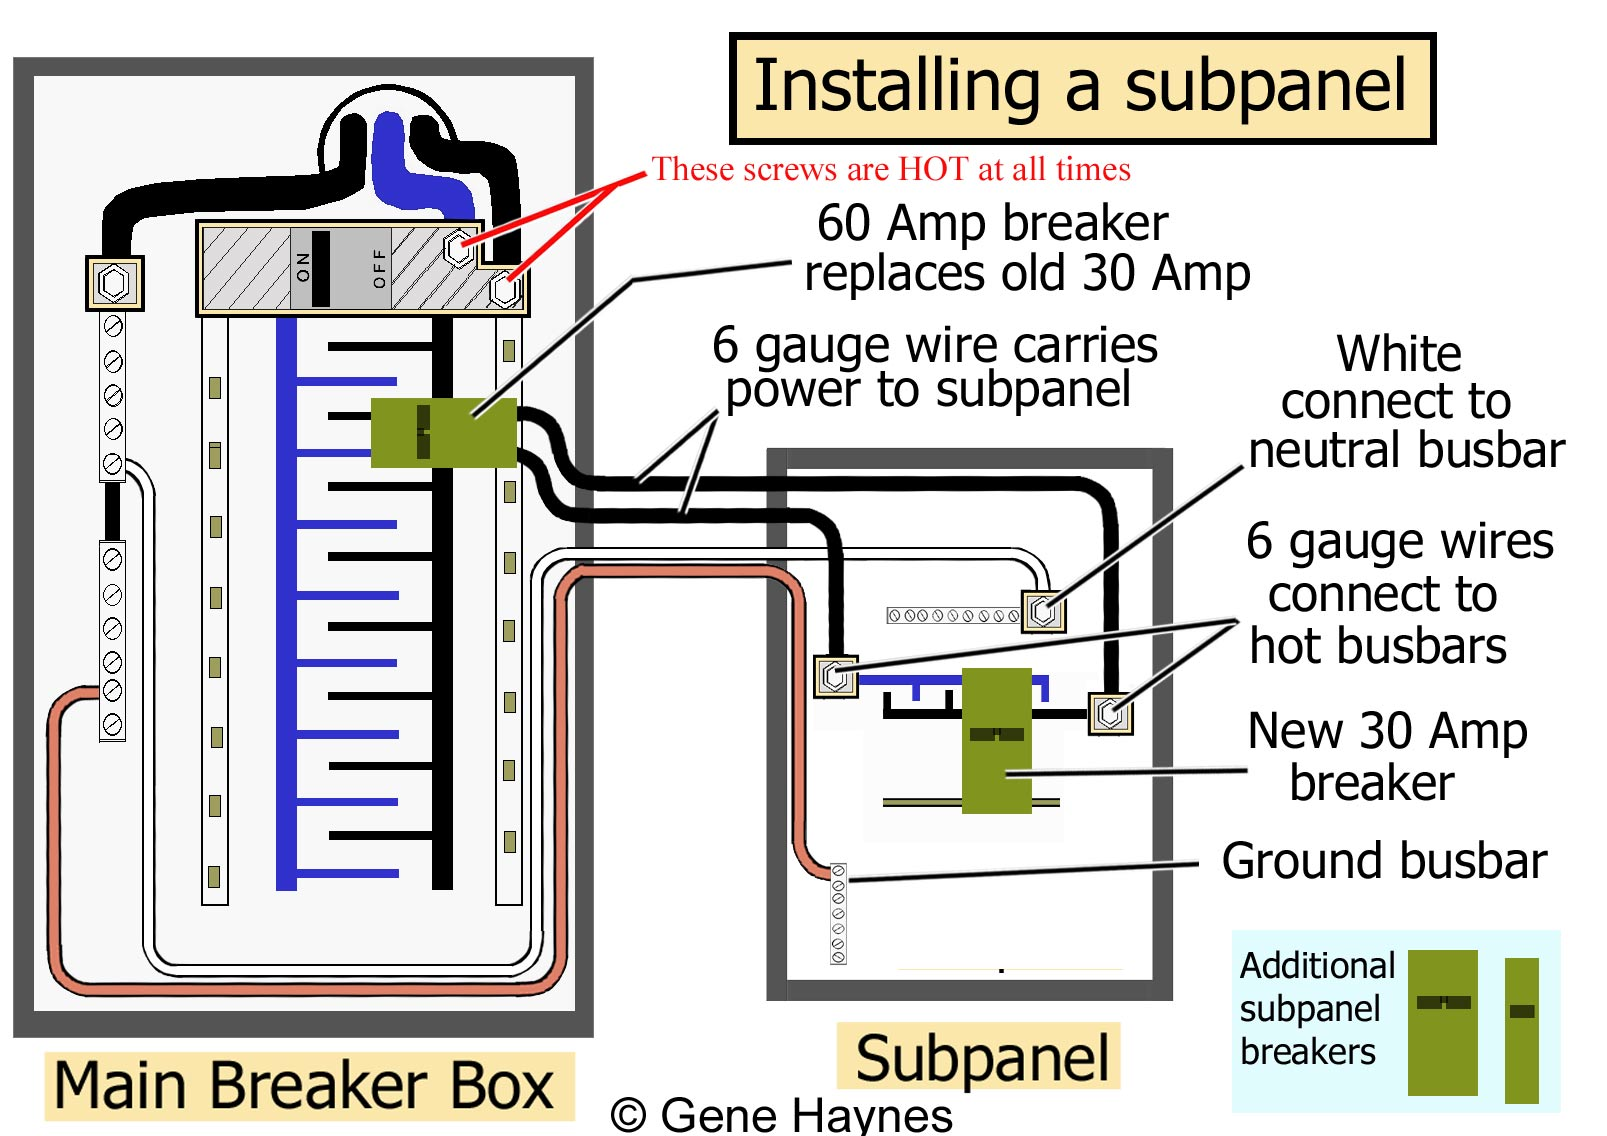 How To Install A Subpanel Main Lug Electrical Panel Ground Rod 1 60 150 Amp Breaker Replaces Any 240 In Box Near Top Of